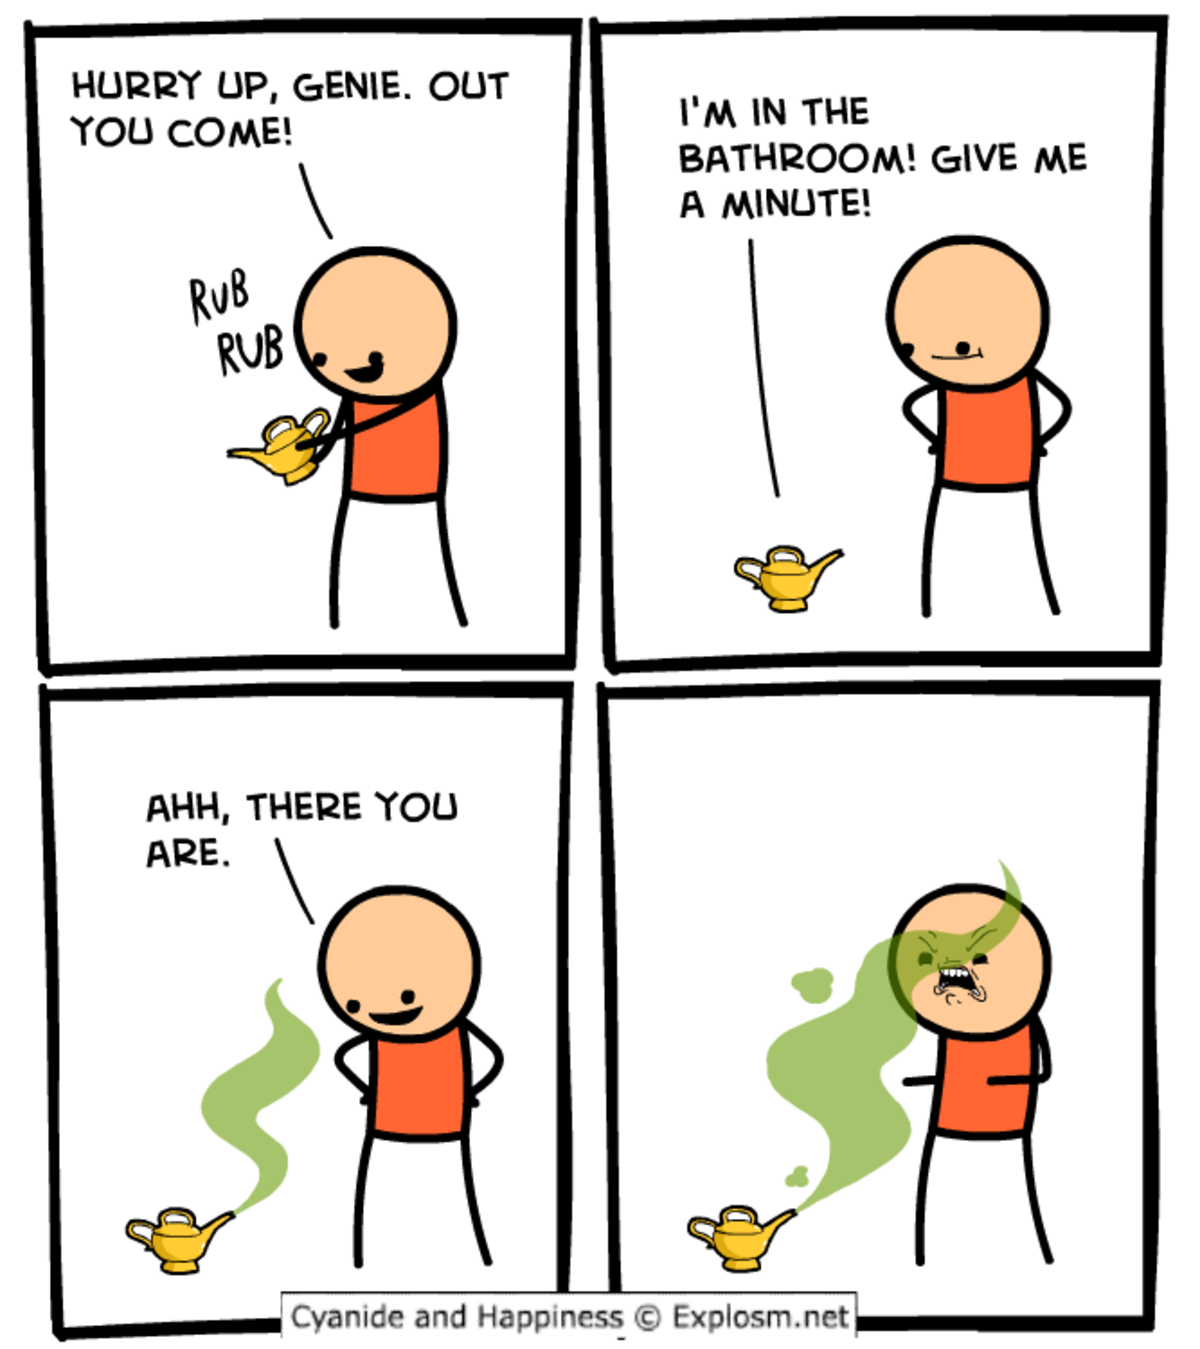 Genie Week. http://explosm.net/comics/4921/ join list: CyanideandHappiness (123 subs)Mention Clicks: 2955Msgs Sent: 14667Mention History. HURRY UP, GENE. OUT YO